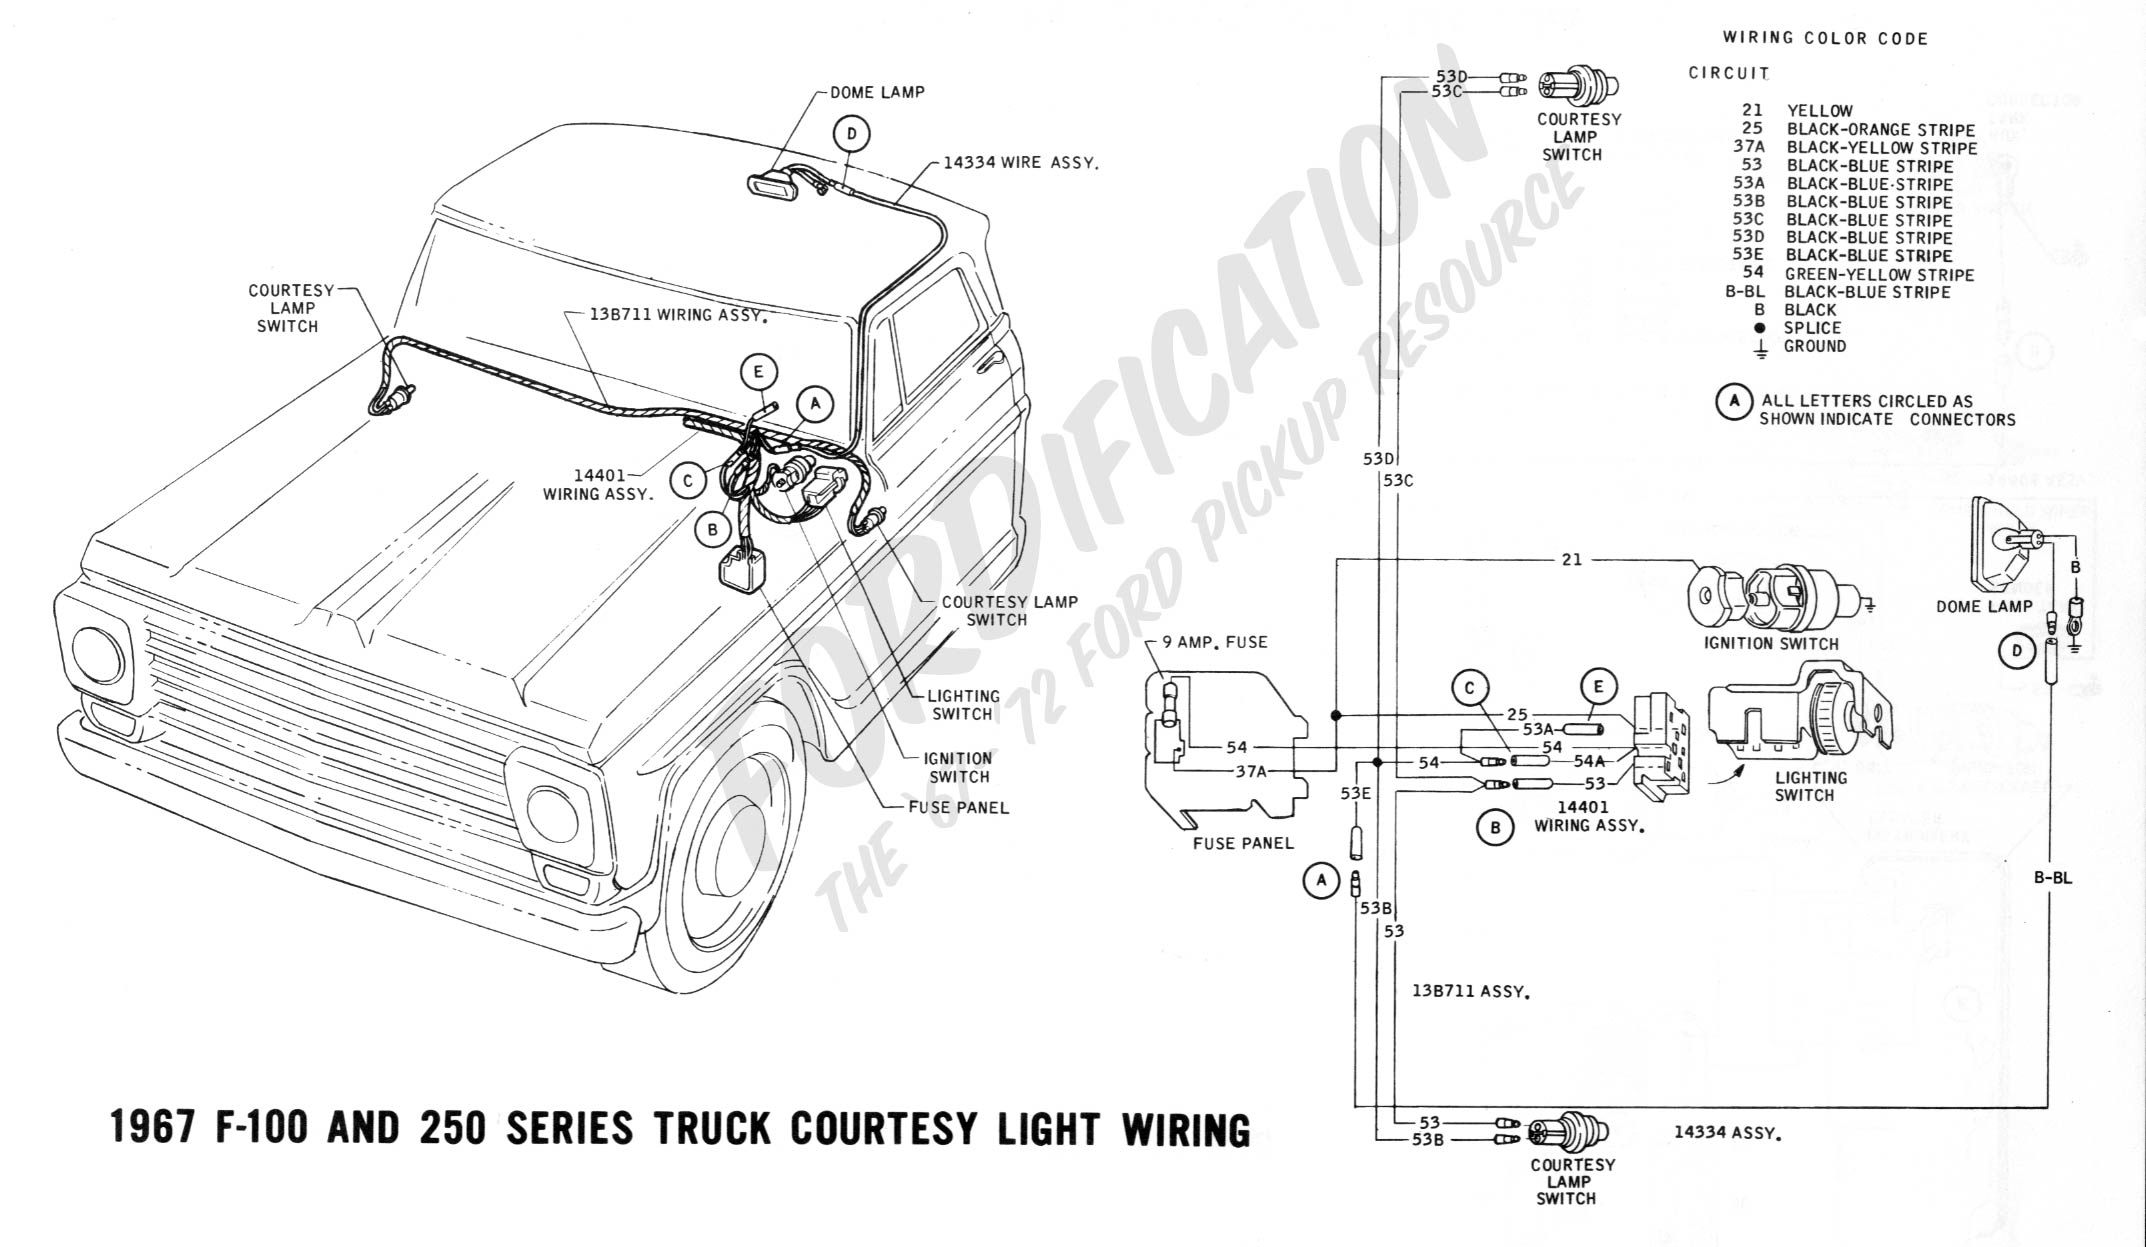 wiring in ignition switch in 1966 f100 ford truck enthusiasts forums ford pickup trucks here's the 67 diagram for the domelight www fordification com tech wi rtesylight jpg